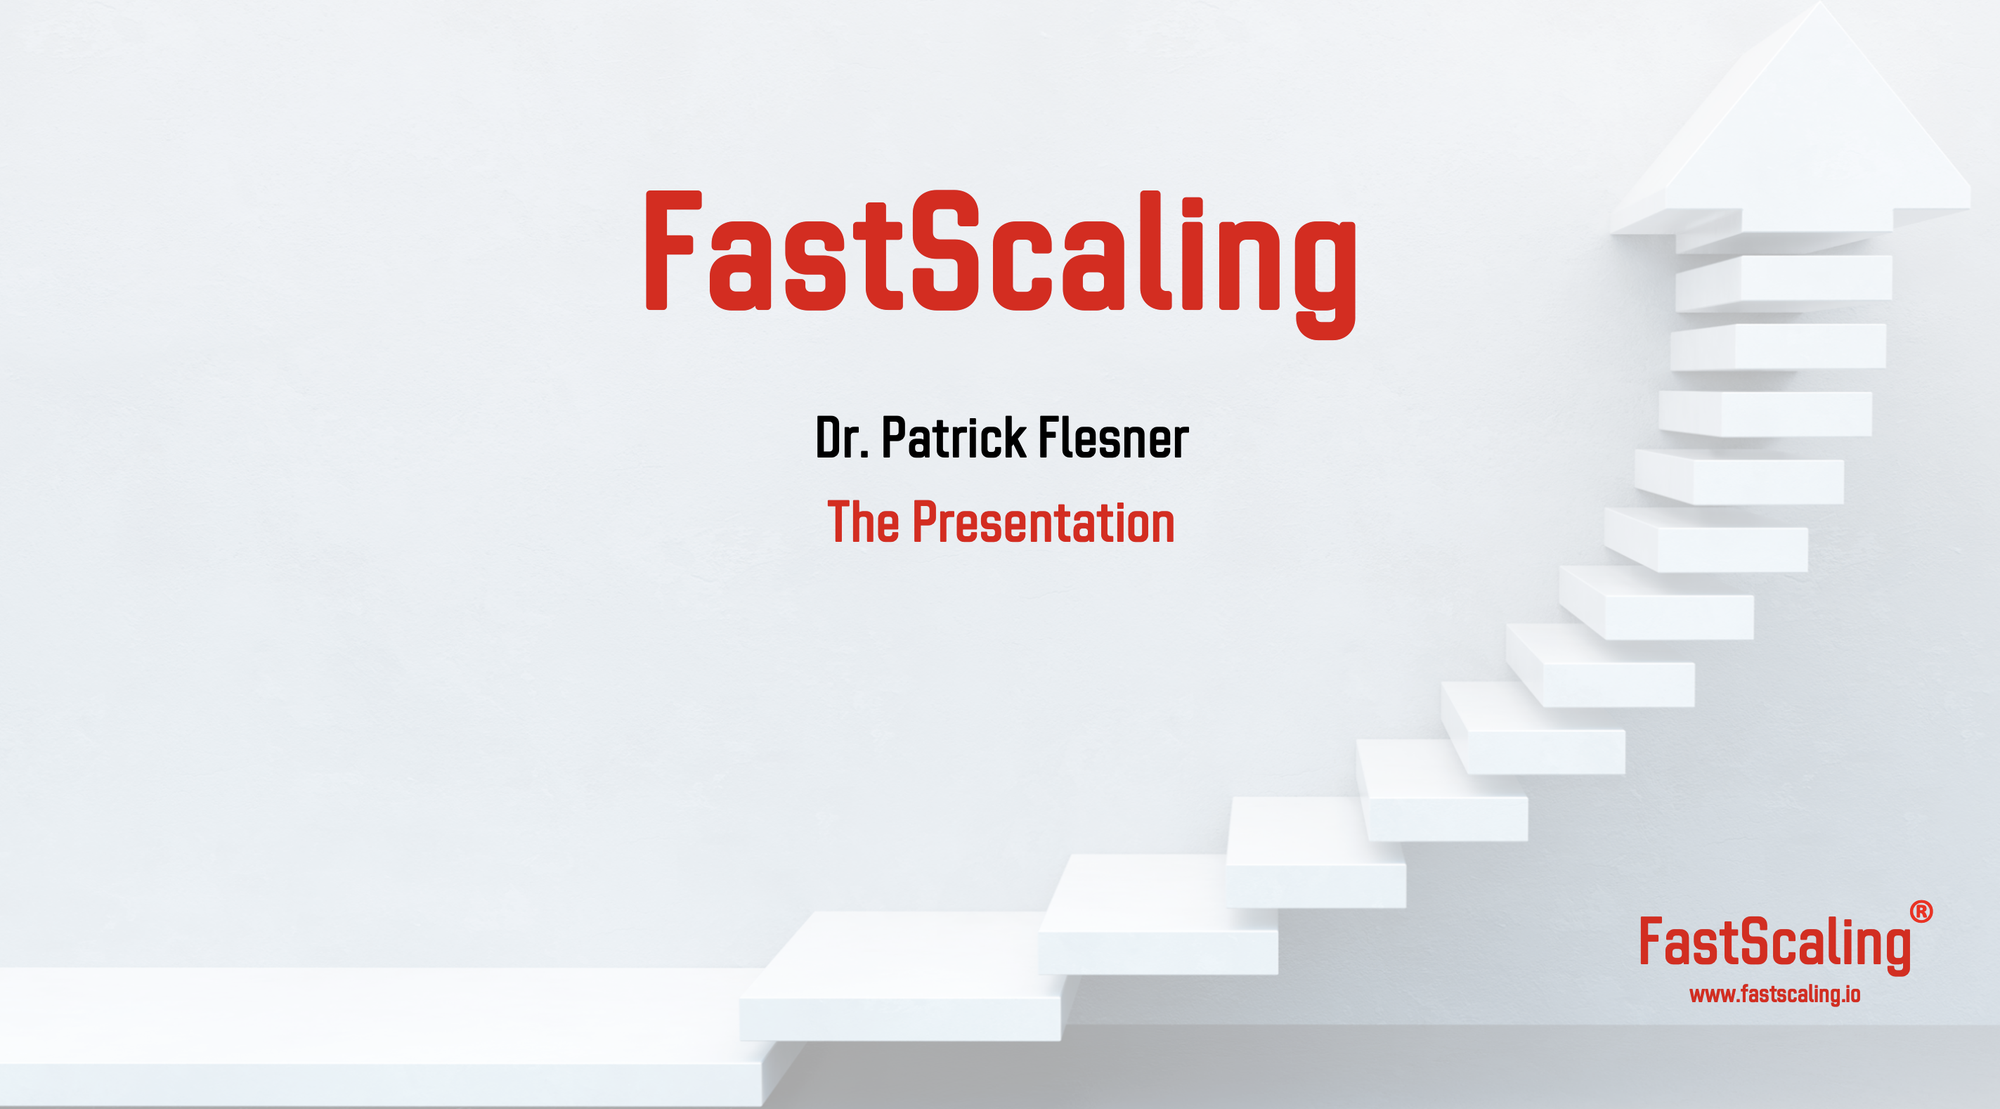 FastScaling - The Presentation